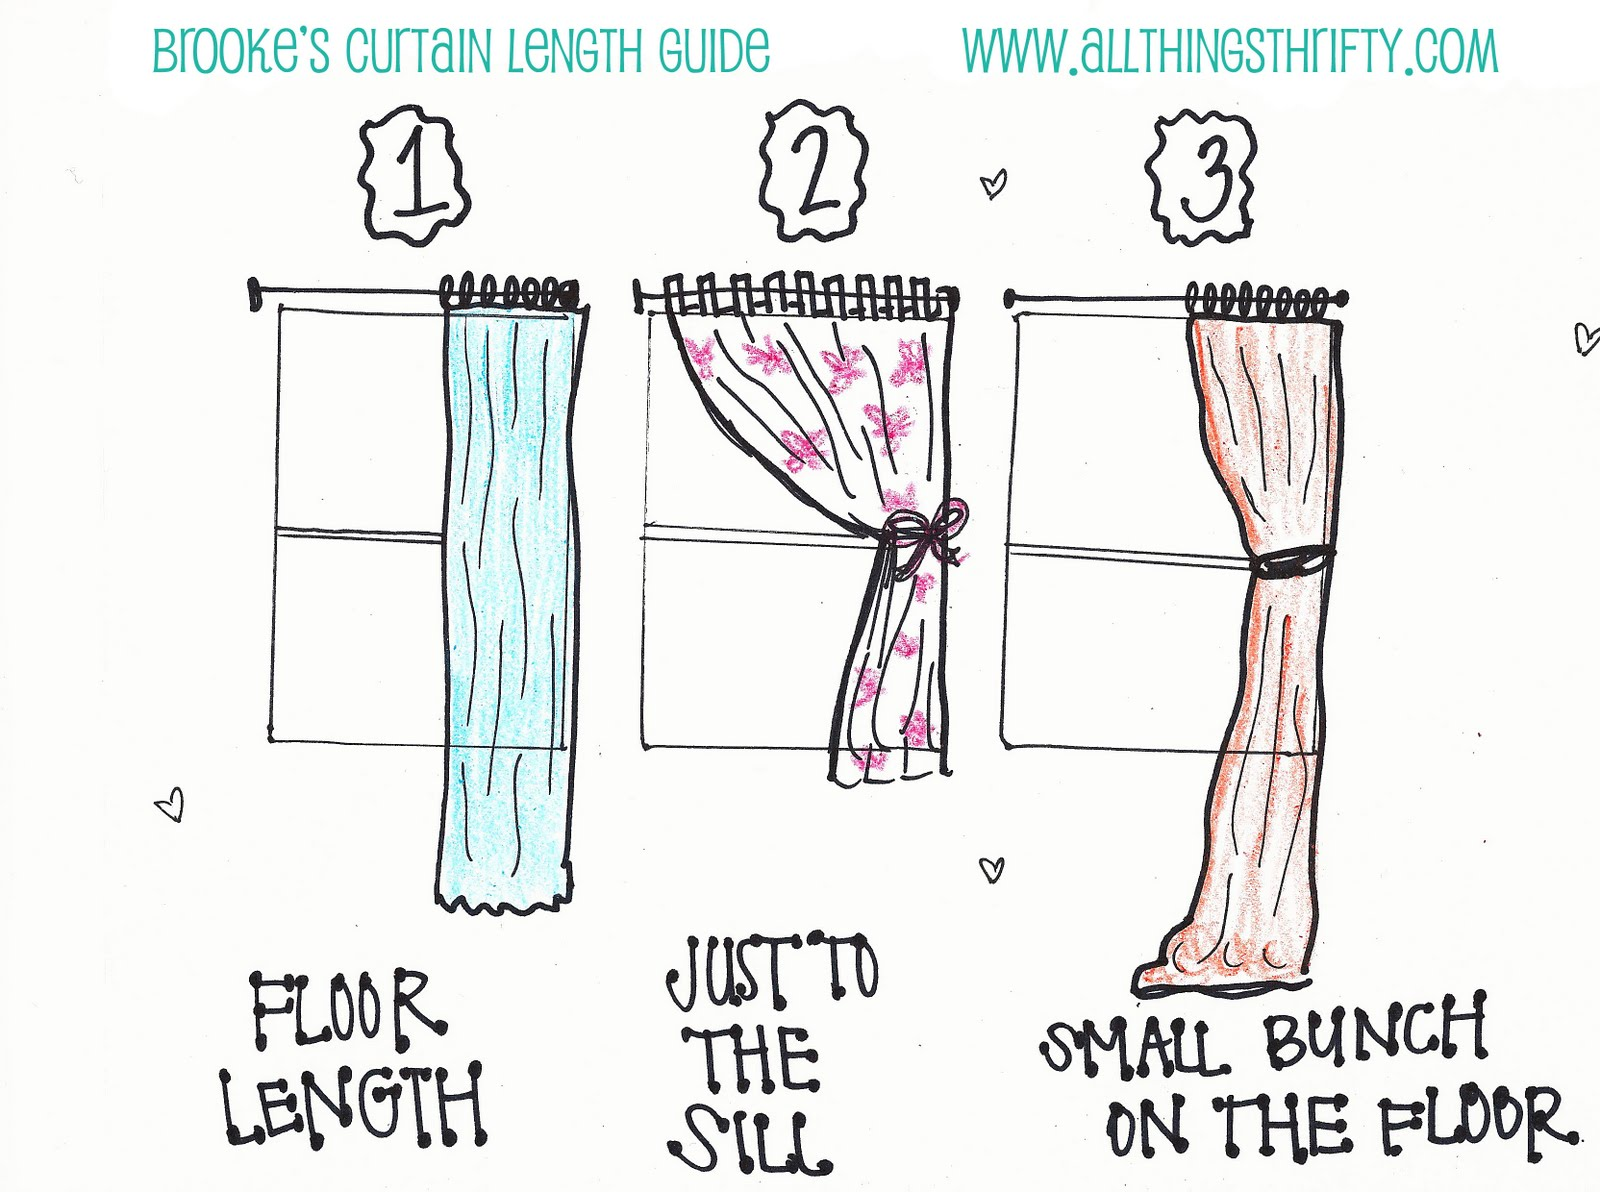 What length should your curtains be?